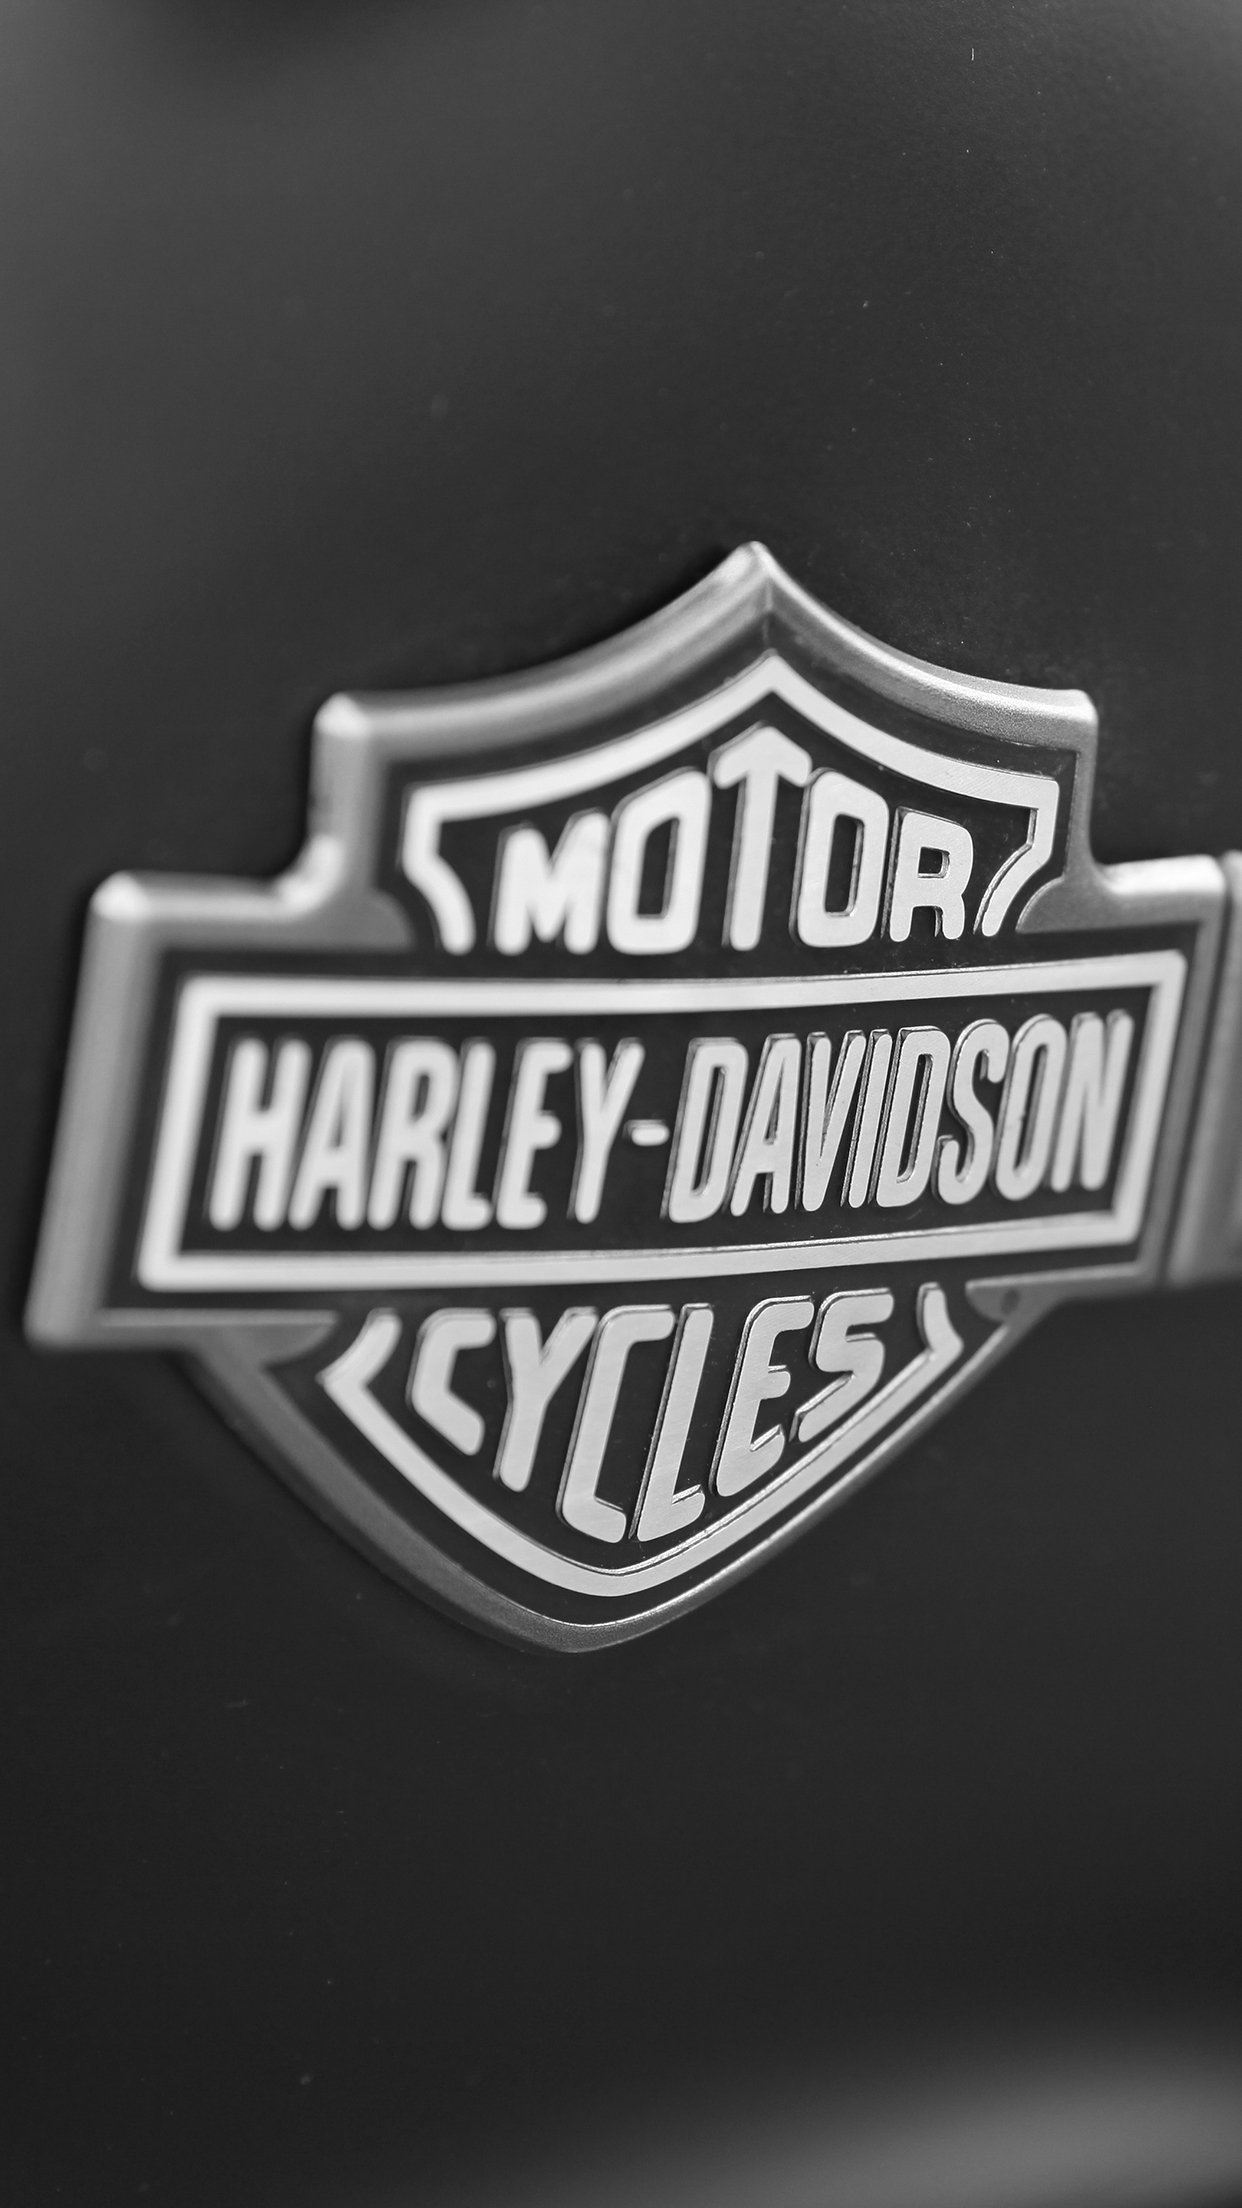 Awesome harley davidson iphone wallpaper wallpaper hd iphone x 8 7 6 harley davidson logo free voltagebd Images